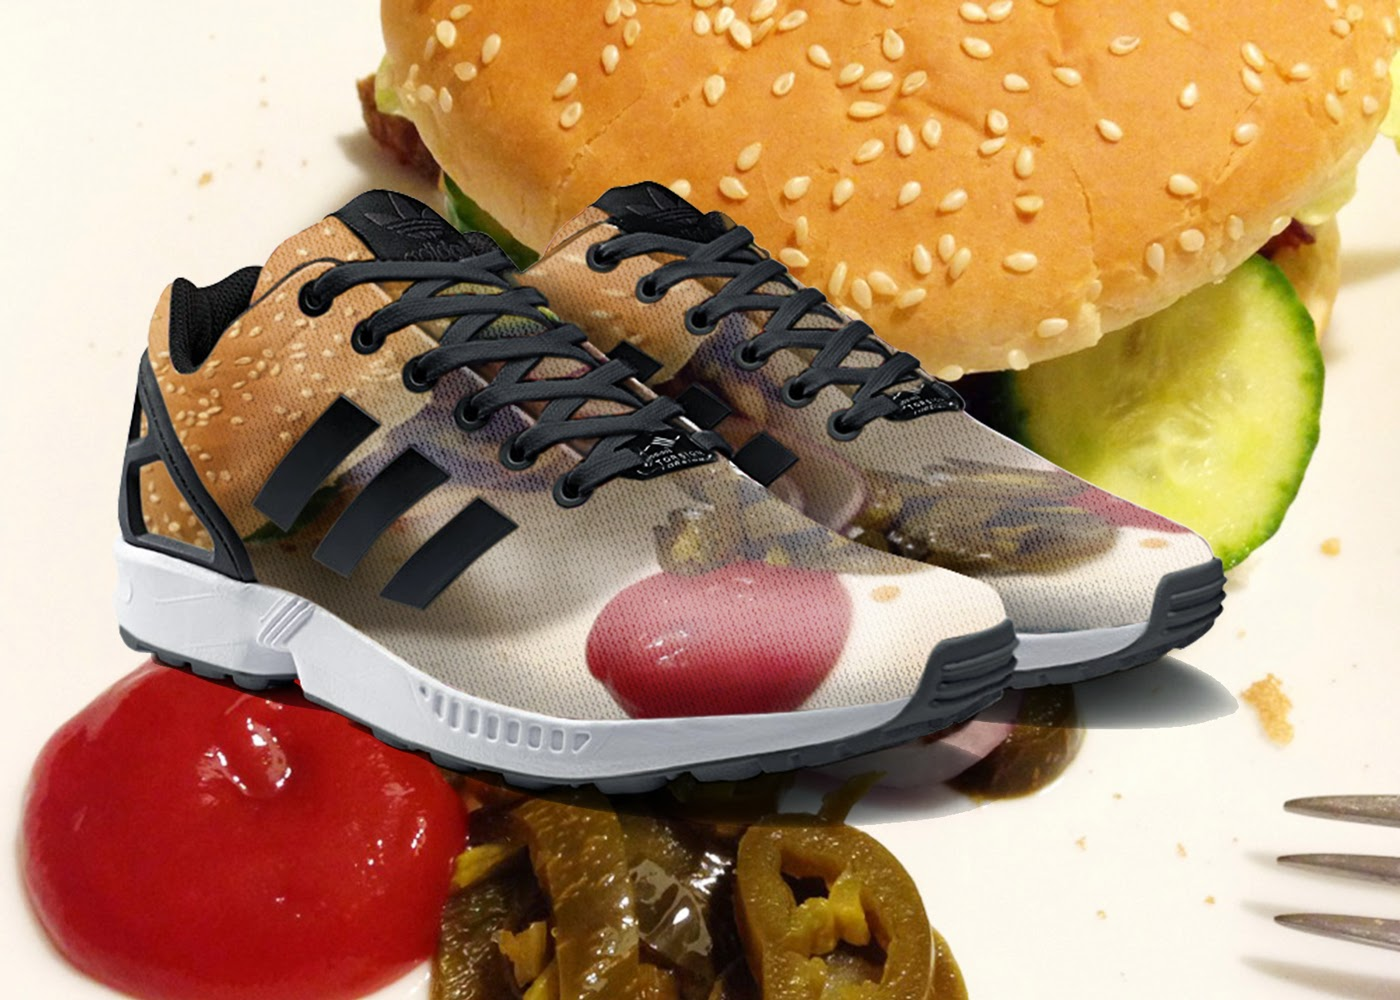 05-mi-Adidas-ZX-Flux-Shoe-App-to-Customise-your-Shoes-www-designstack-co